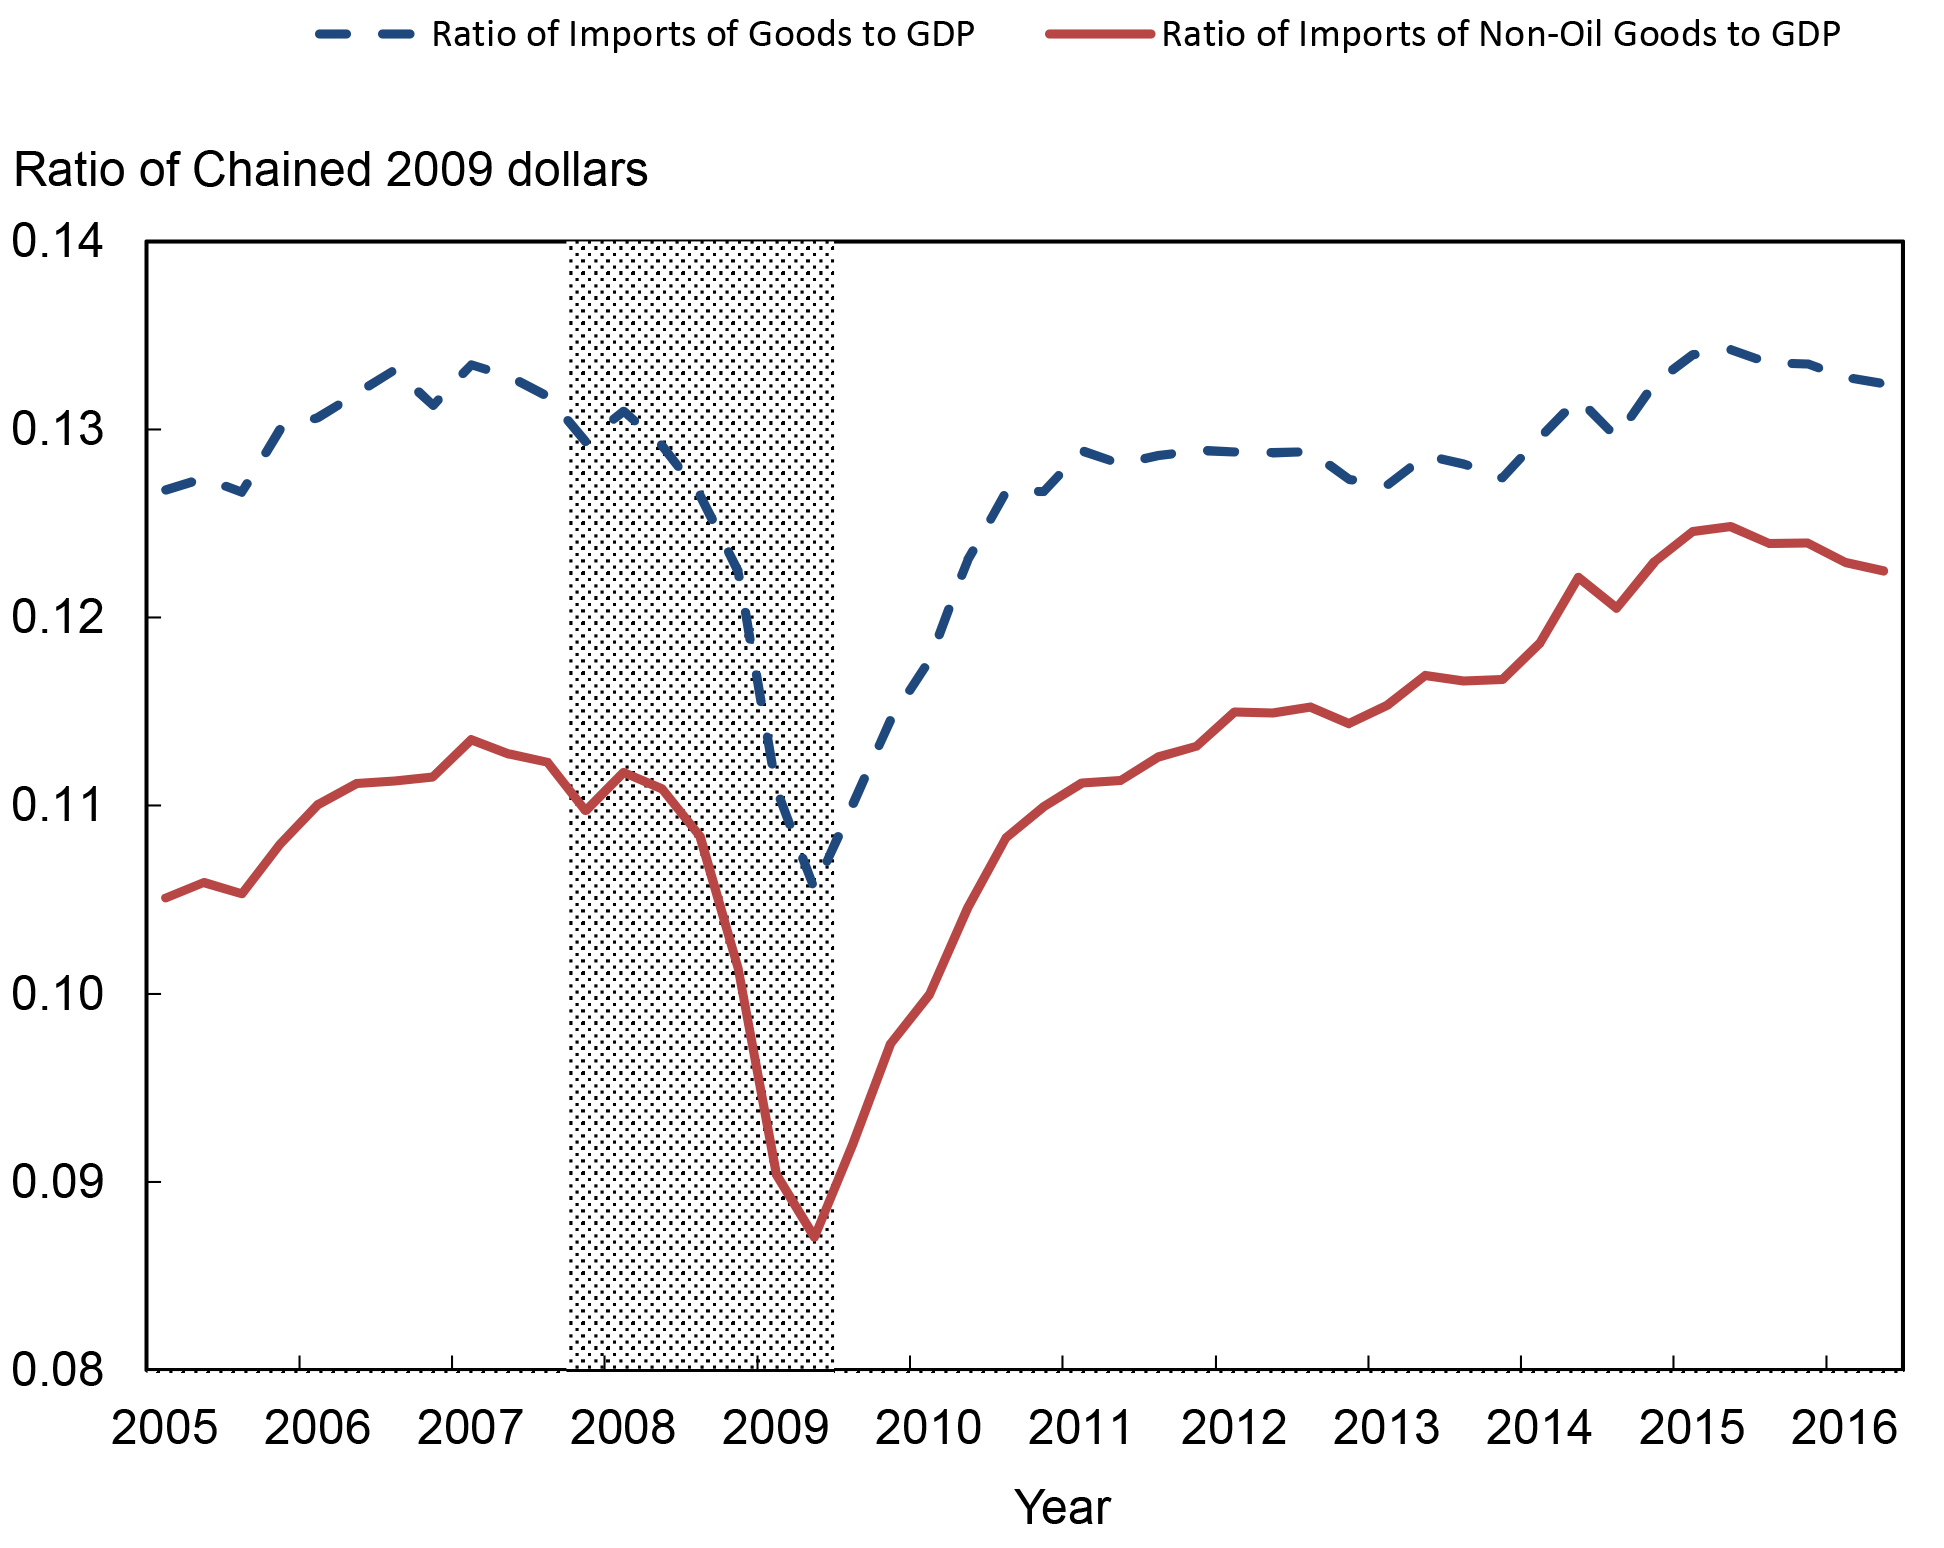 Chart 1. Imports as Share of GDP. See accessible link for data.